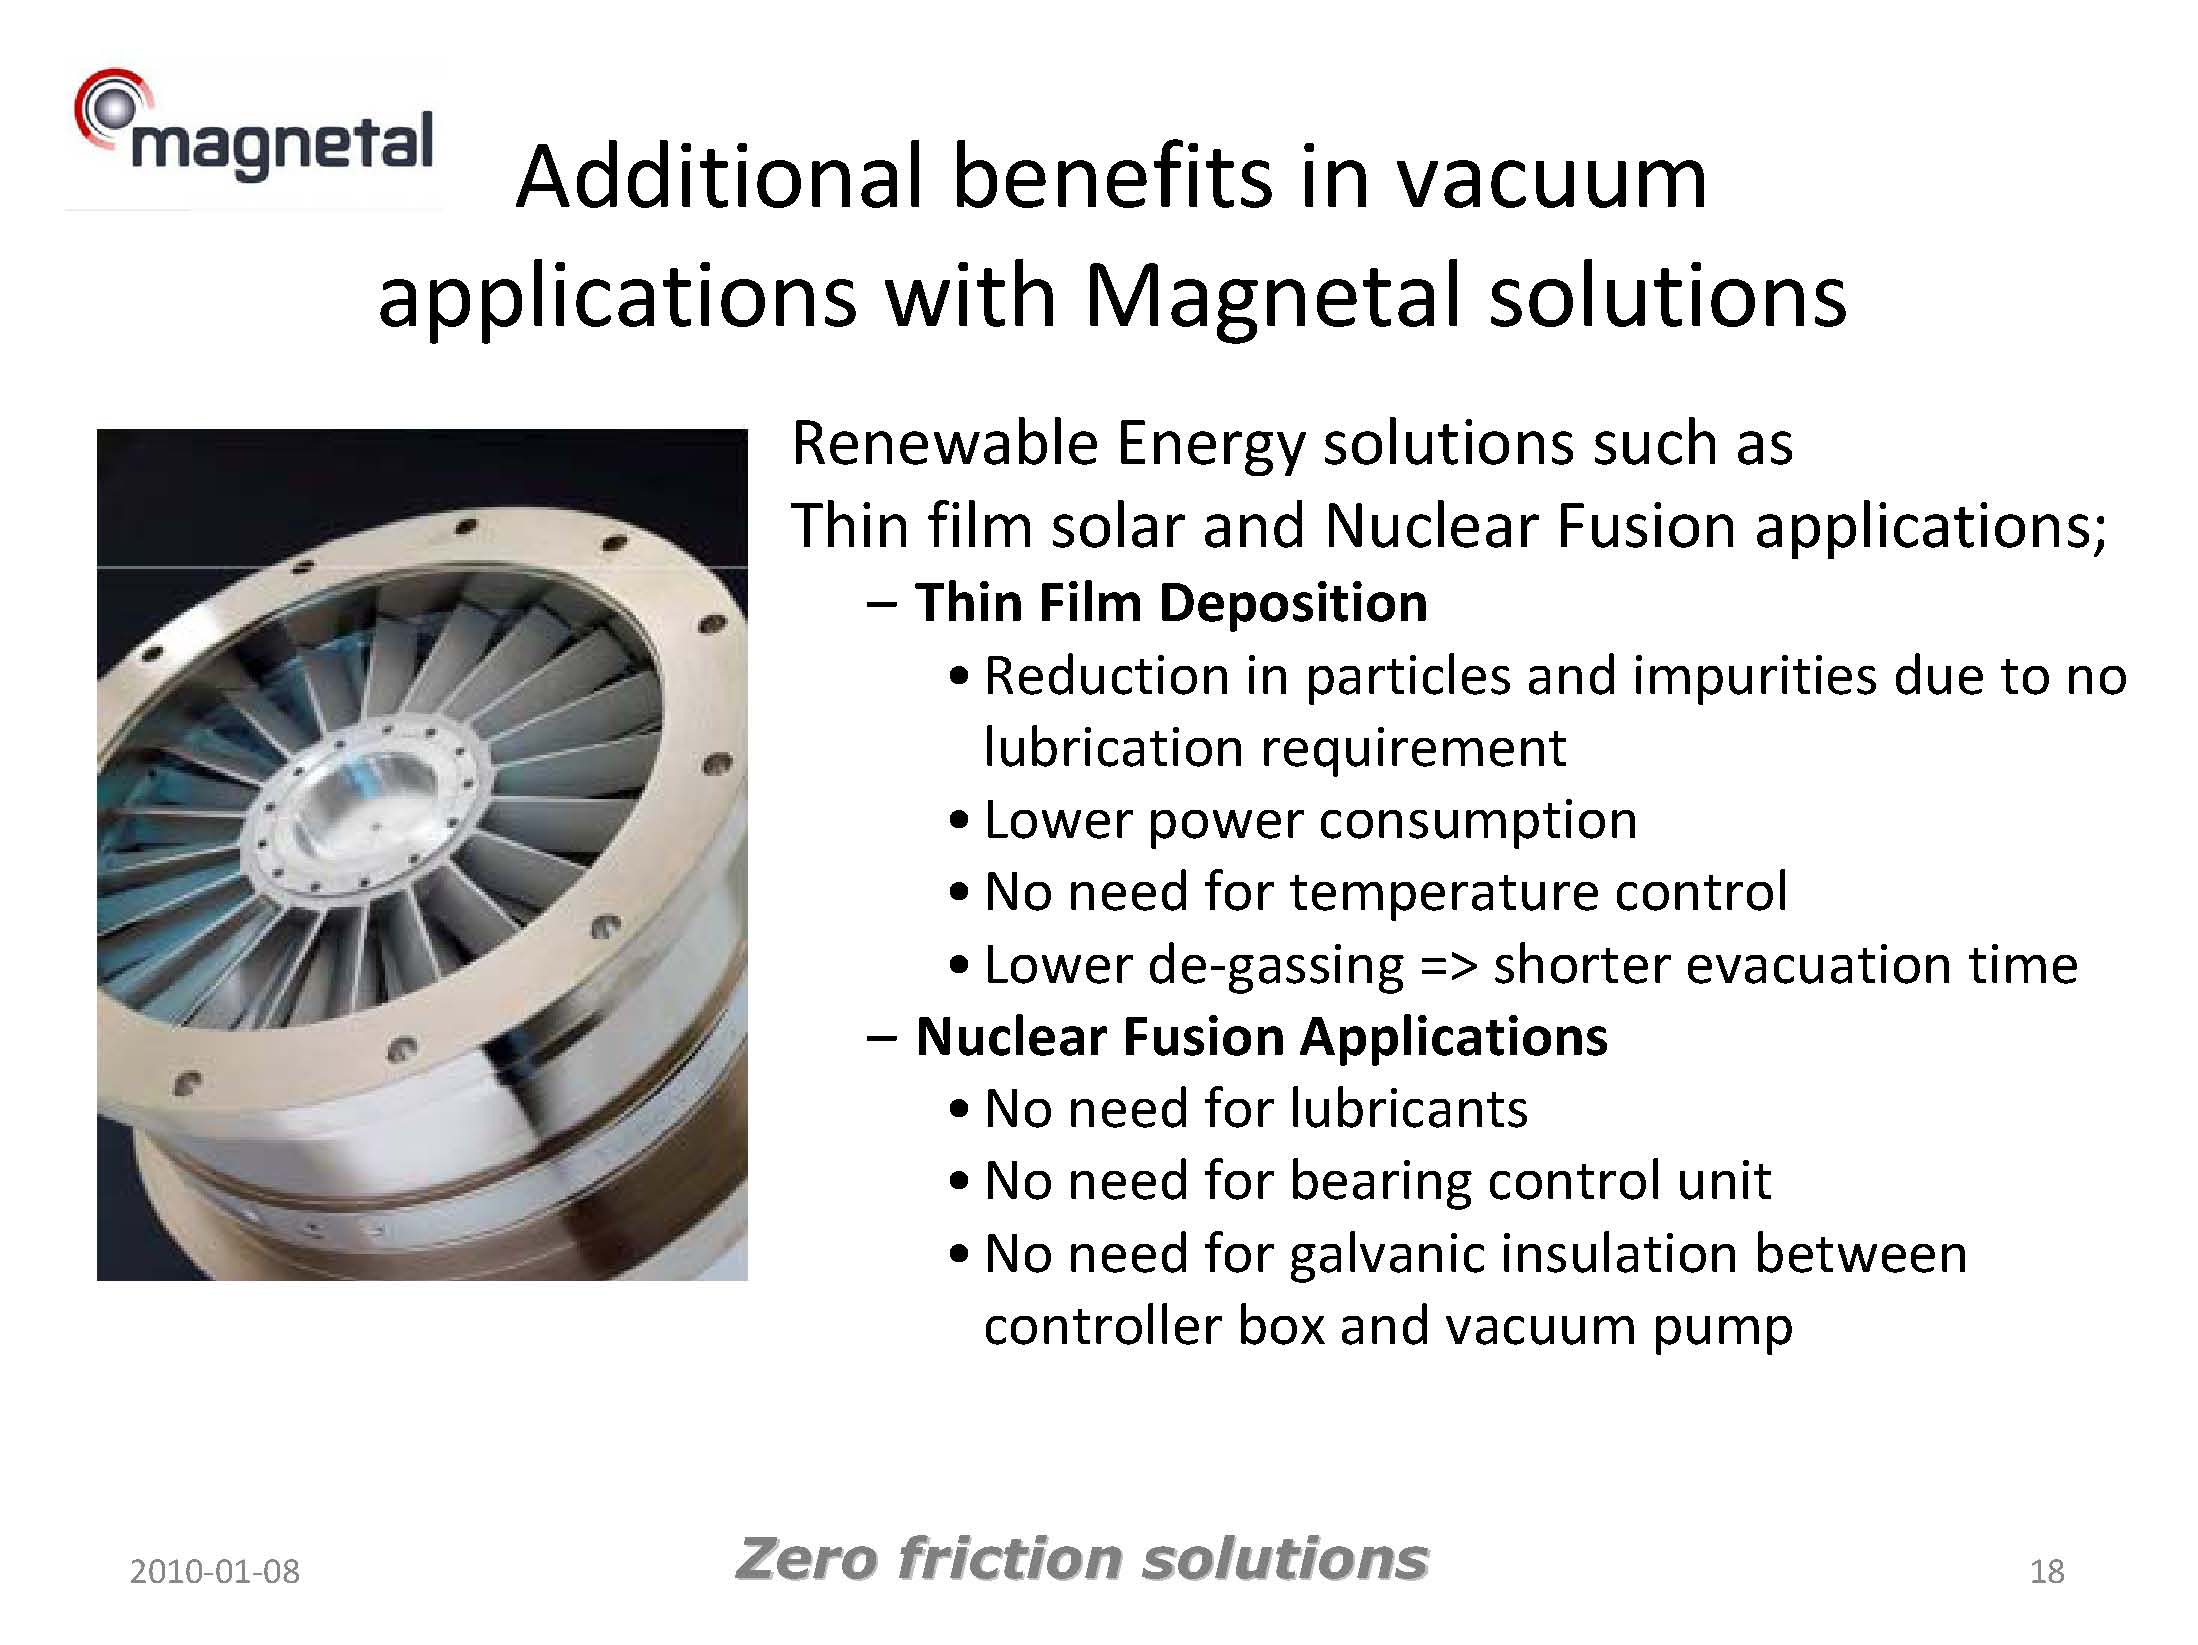 Additional Added Value to Vacuum Technology by Using Magnetal Passive Magnetic Bearings